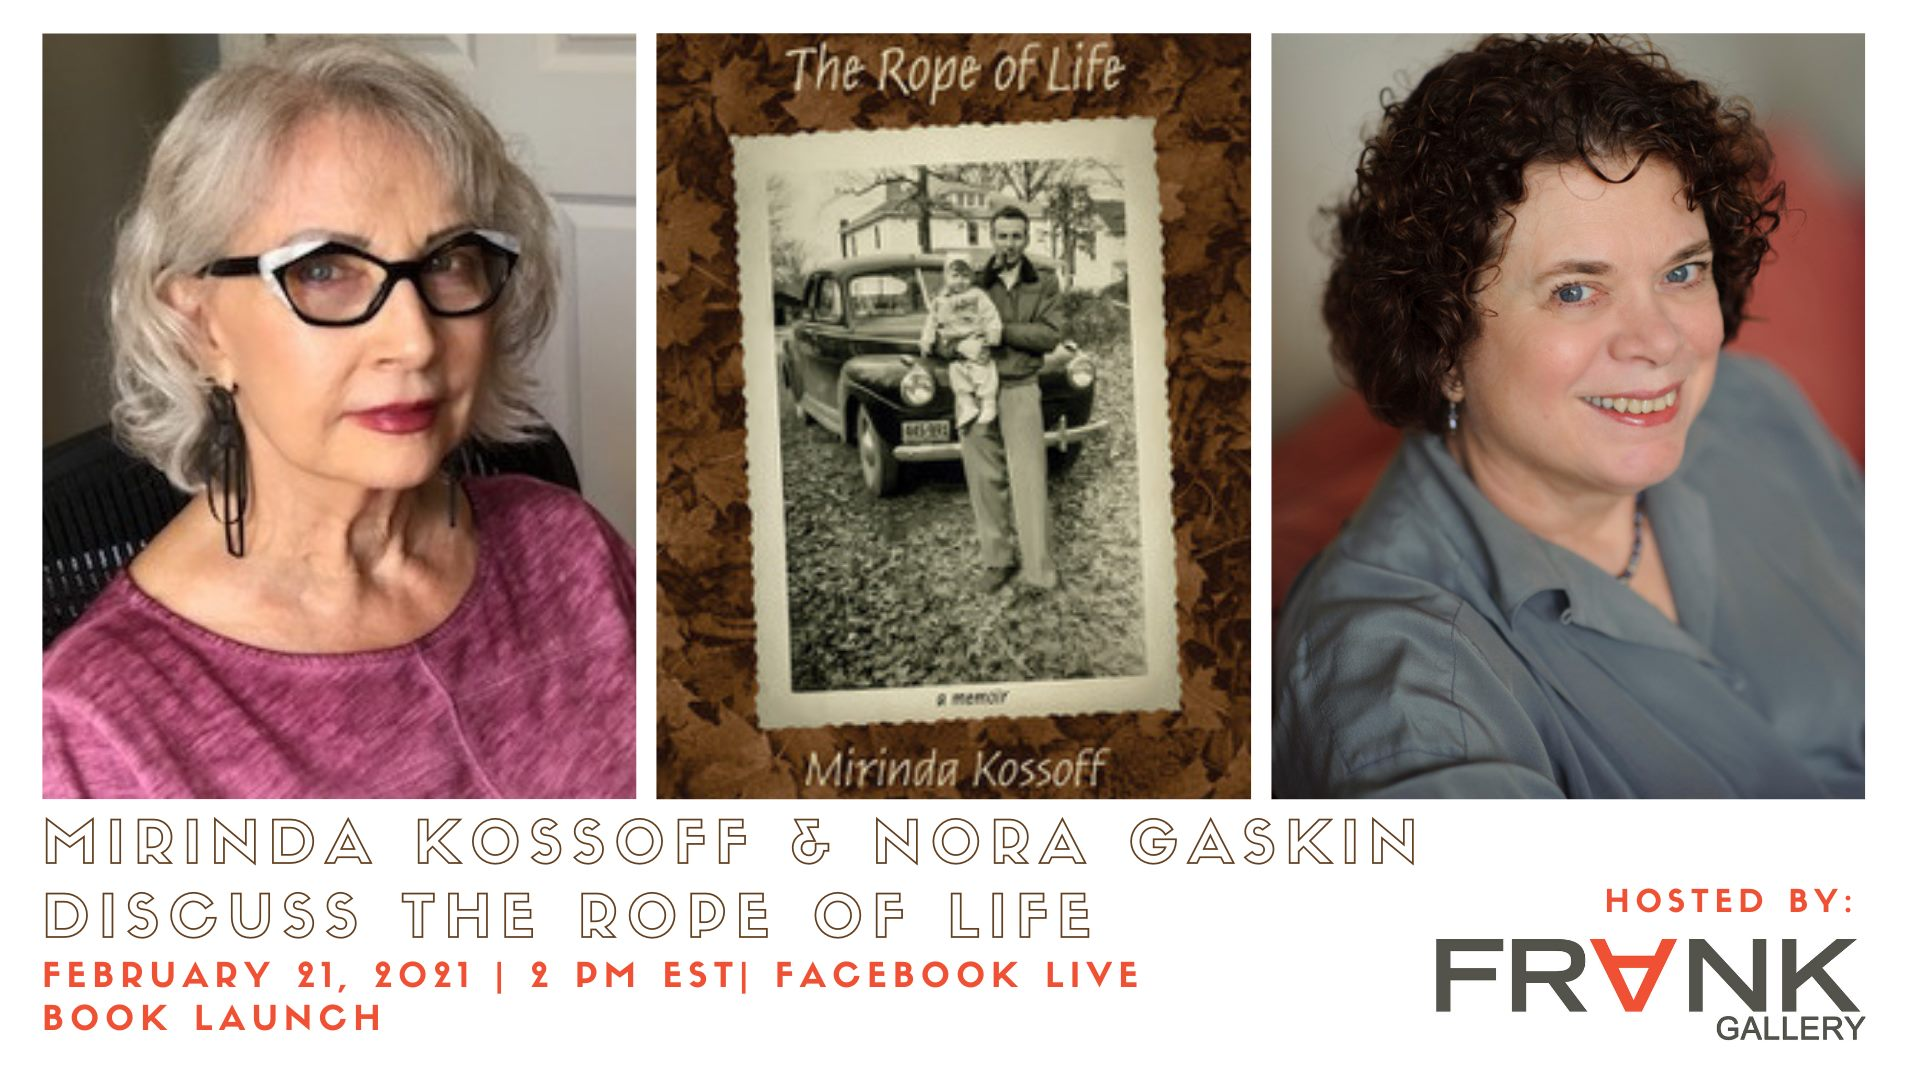 This is the ad for the Virtual Launch of Mirinda Kossoff's book The Rope of Life.